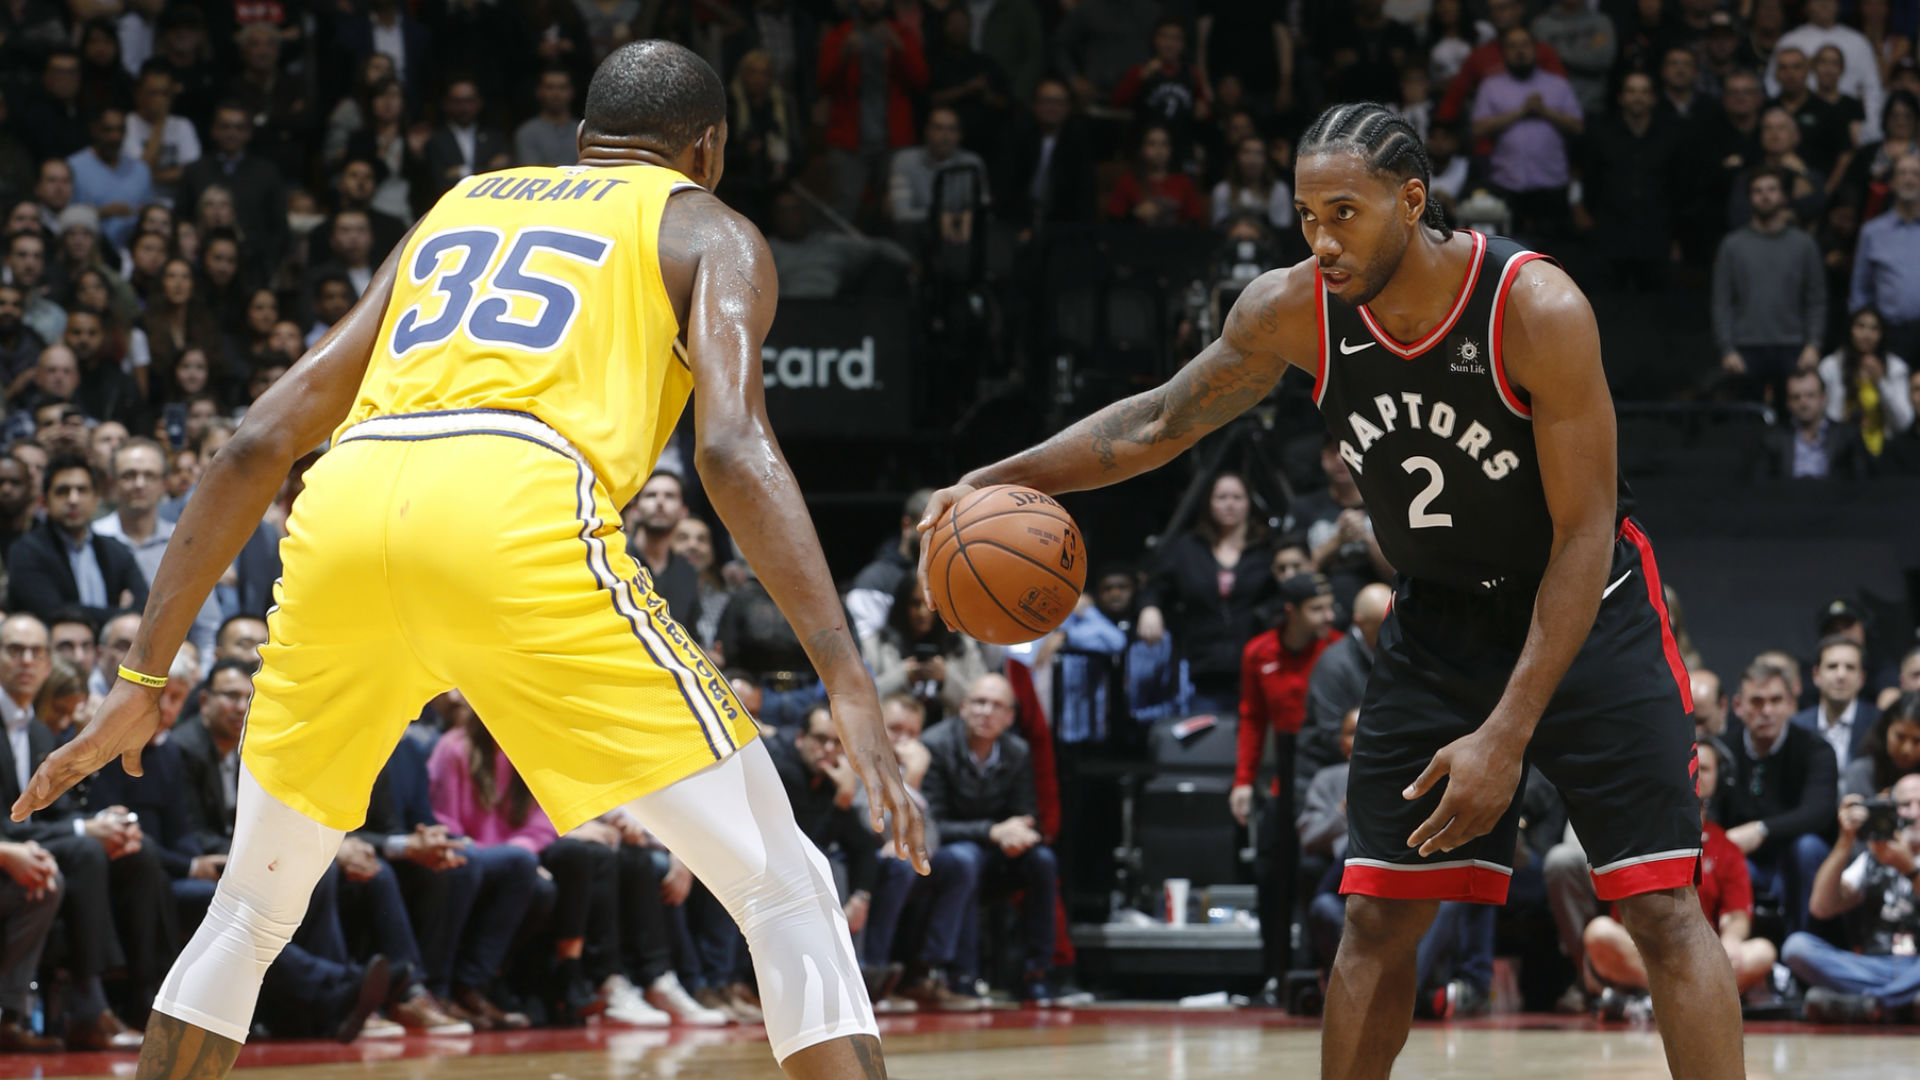 Thursday Night S Raptors Warriors Game Sets Tv Viewership